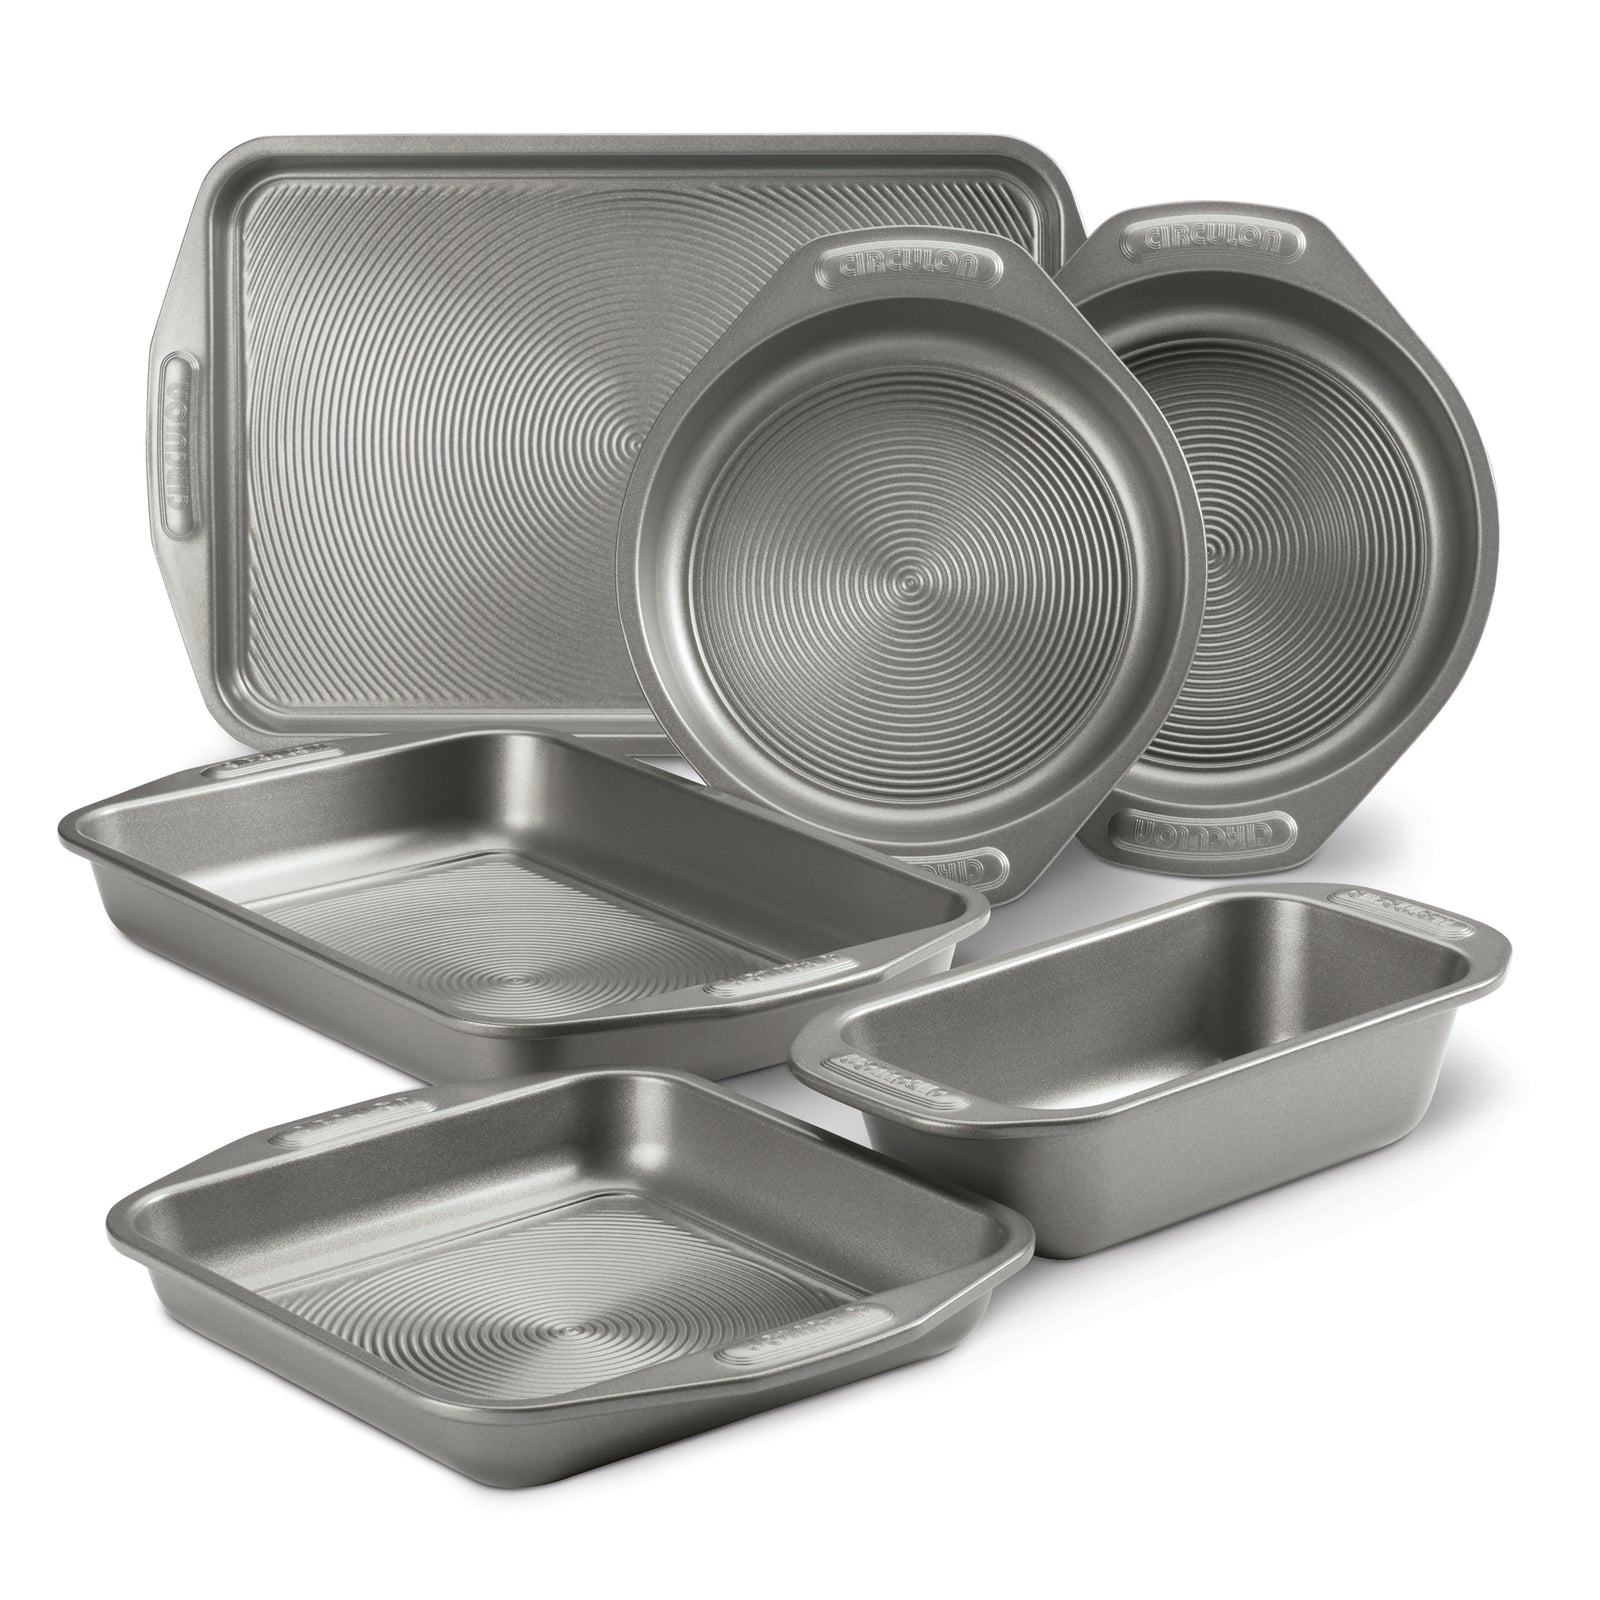 Baking pans for giveaway.